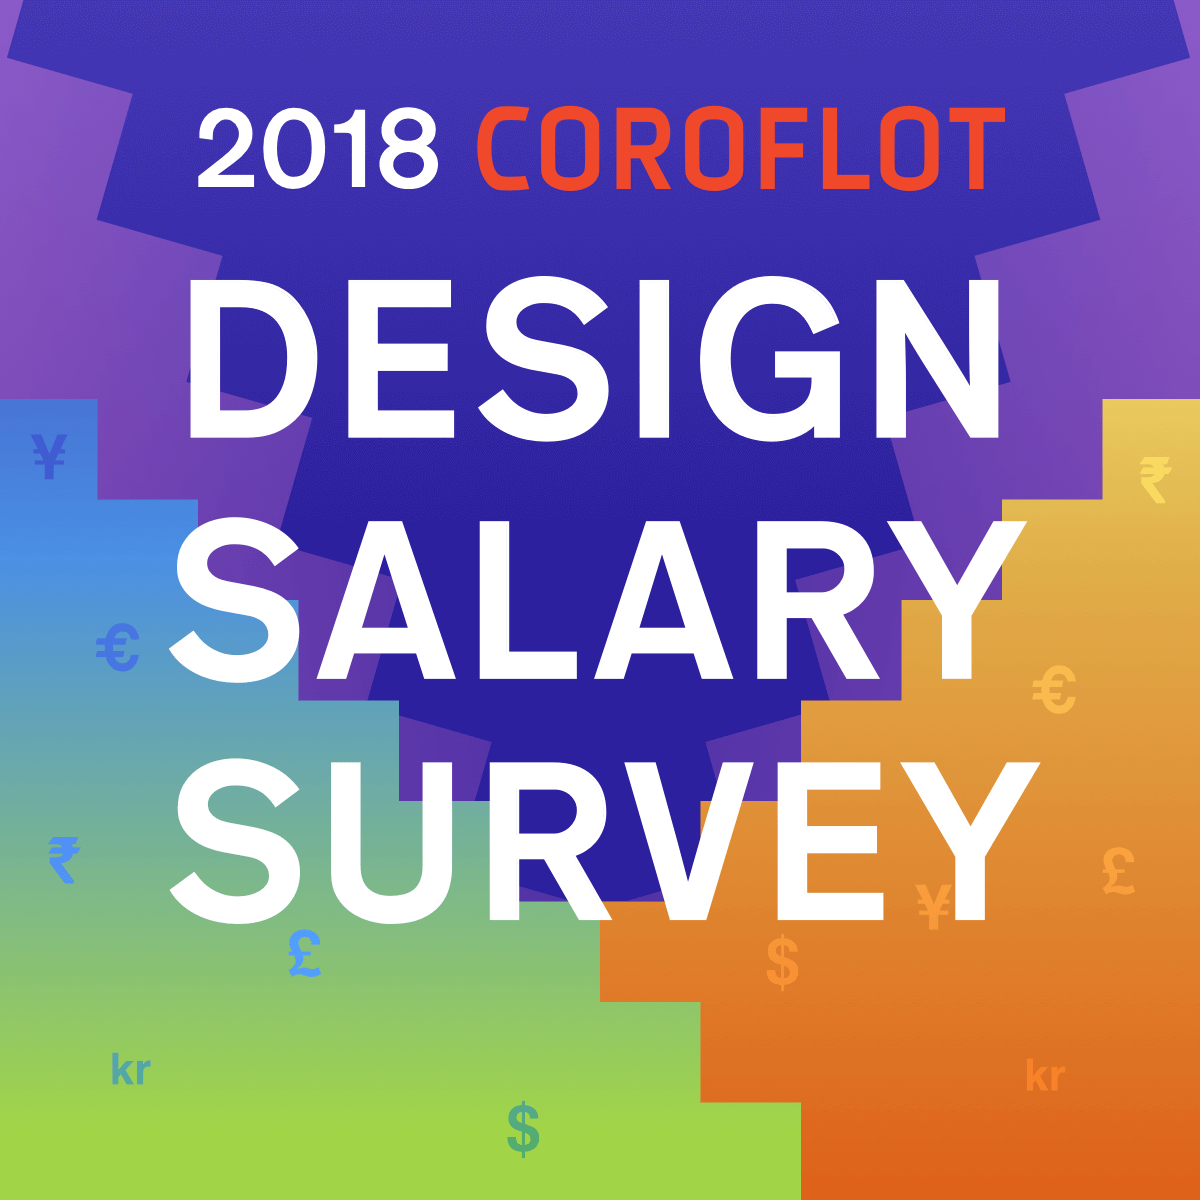 Character Designer Salary : Design salary guide by coroflot